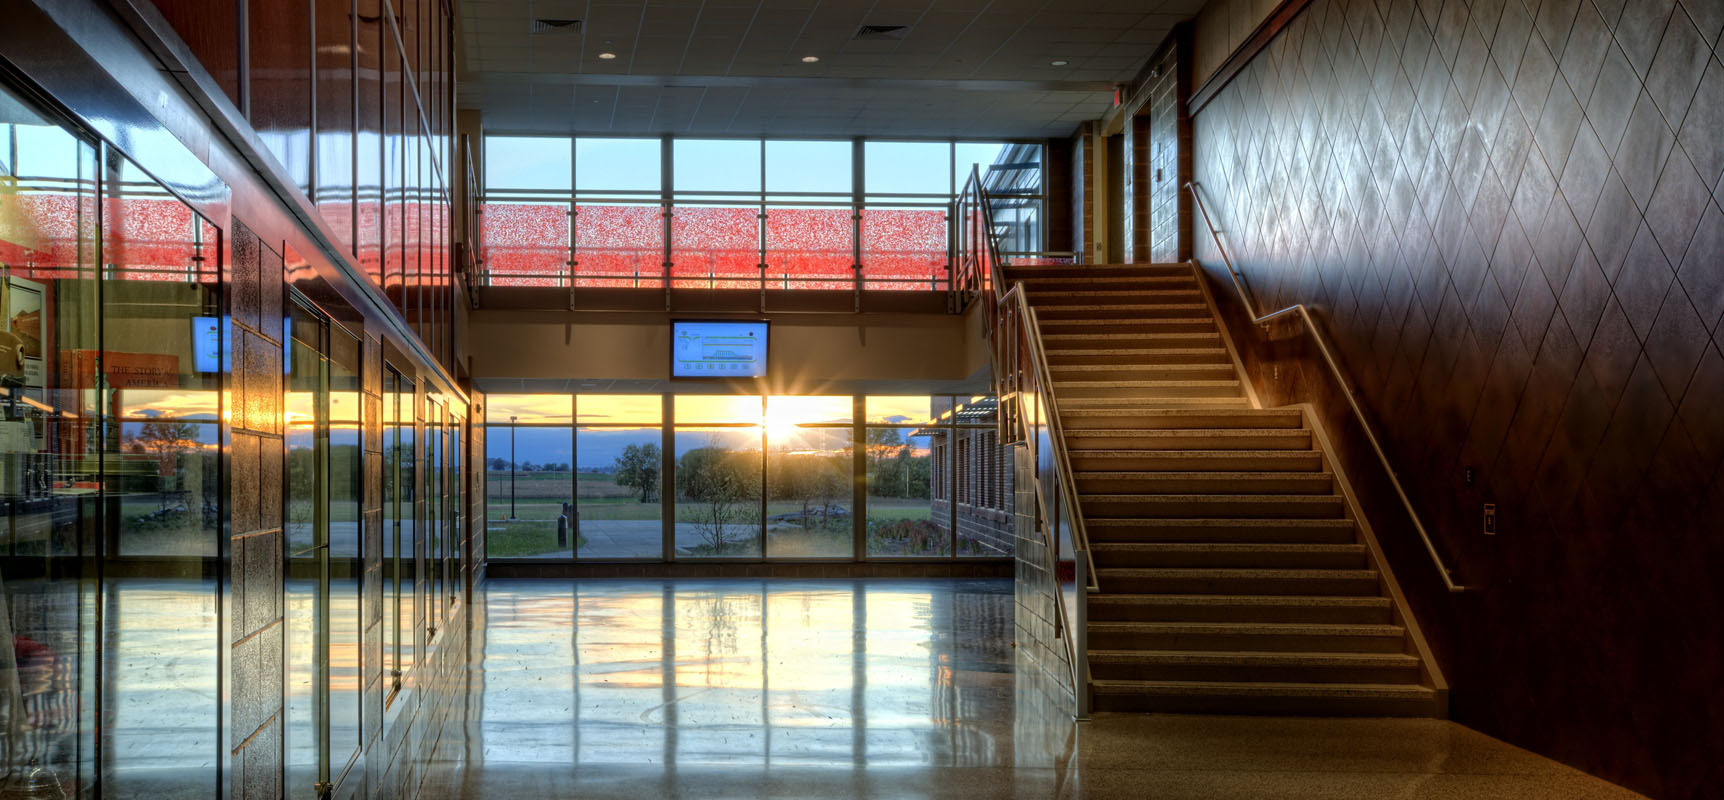 corridor intersection allowing daylight to stream into the building at Warwick School District Middle School